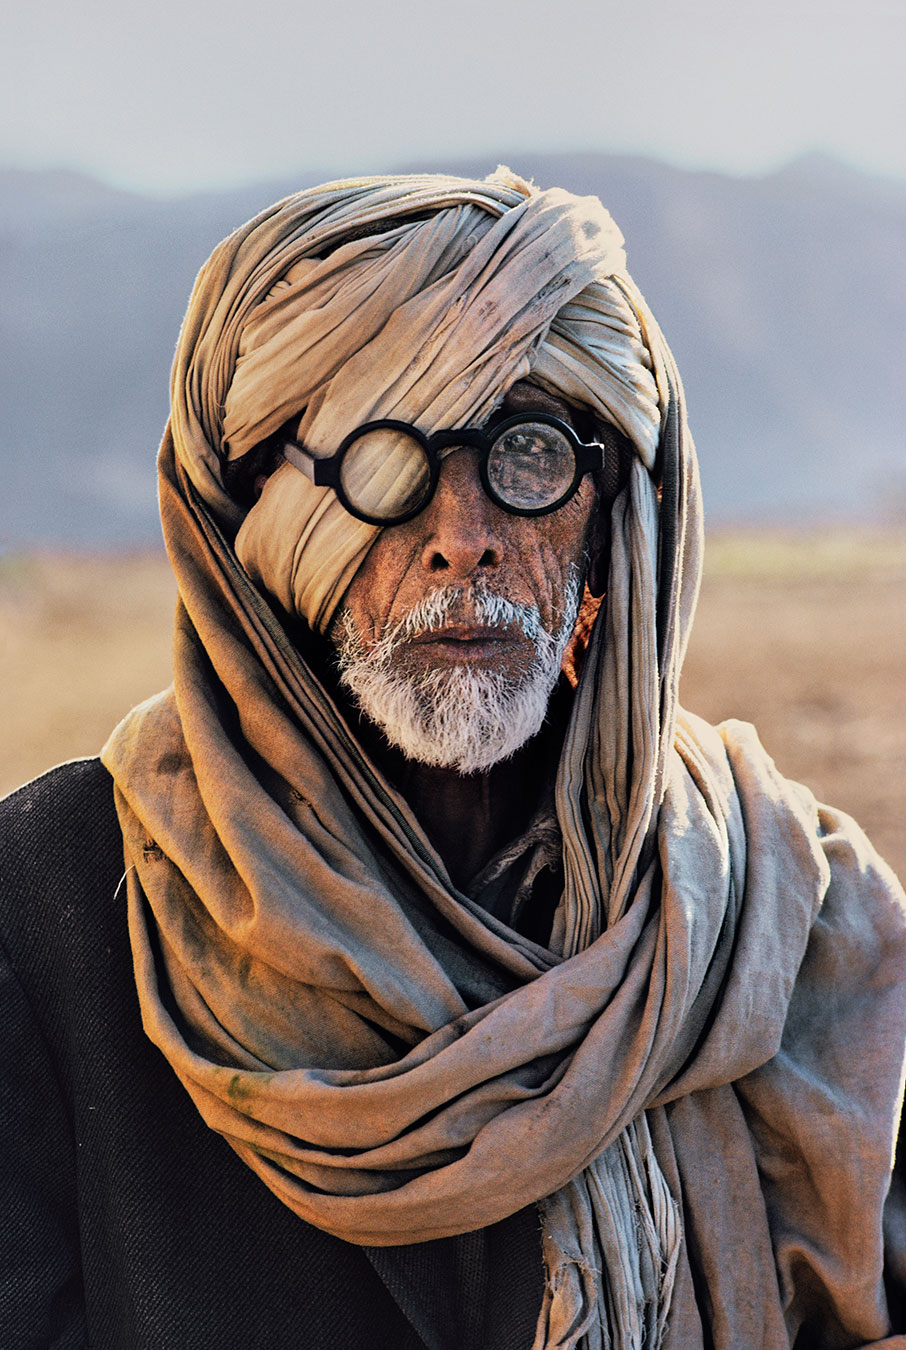 Afghan refugee in Baluchistan, Pakistan.Photo by Steve McCurry.